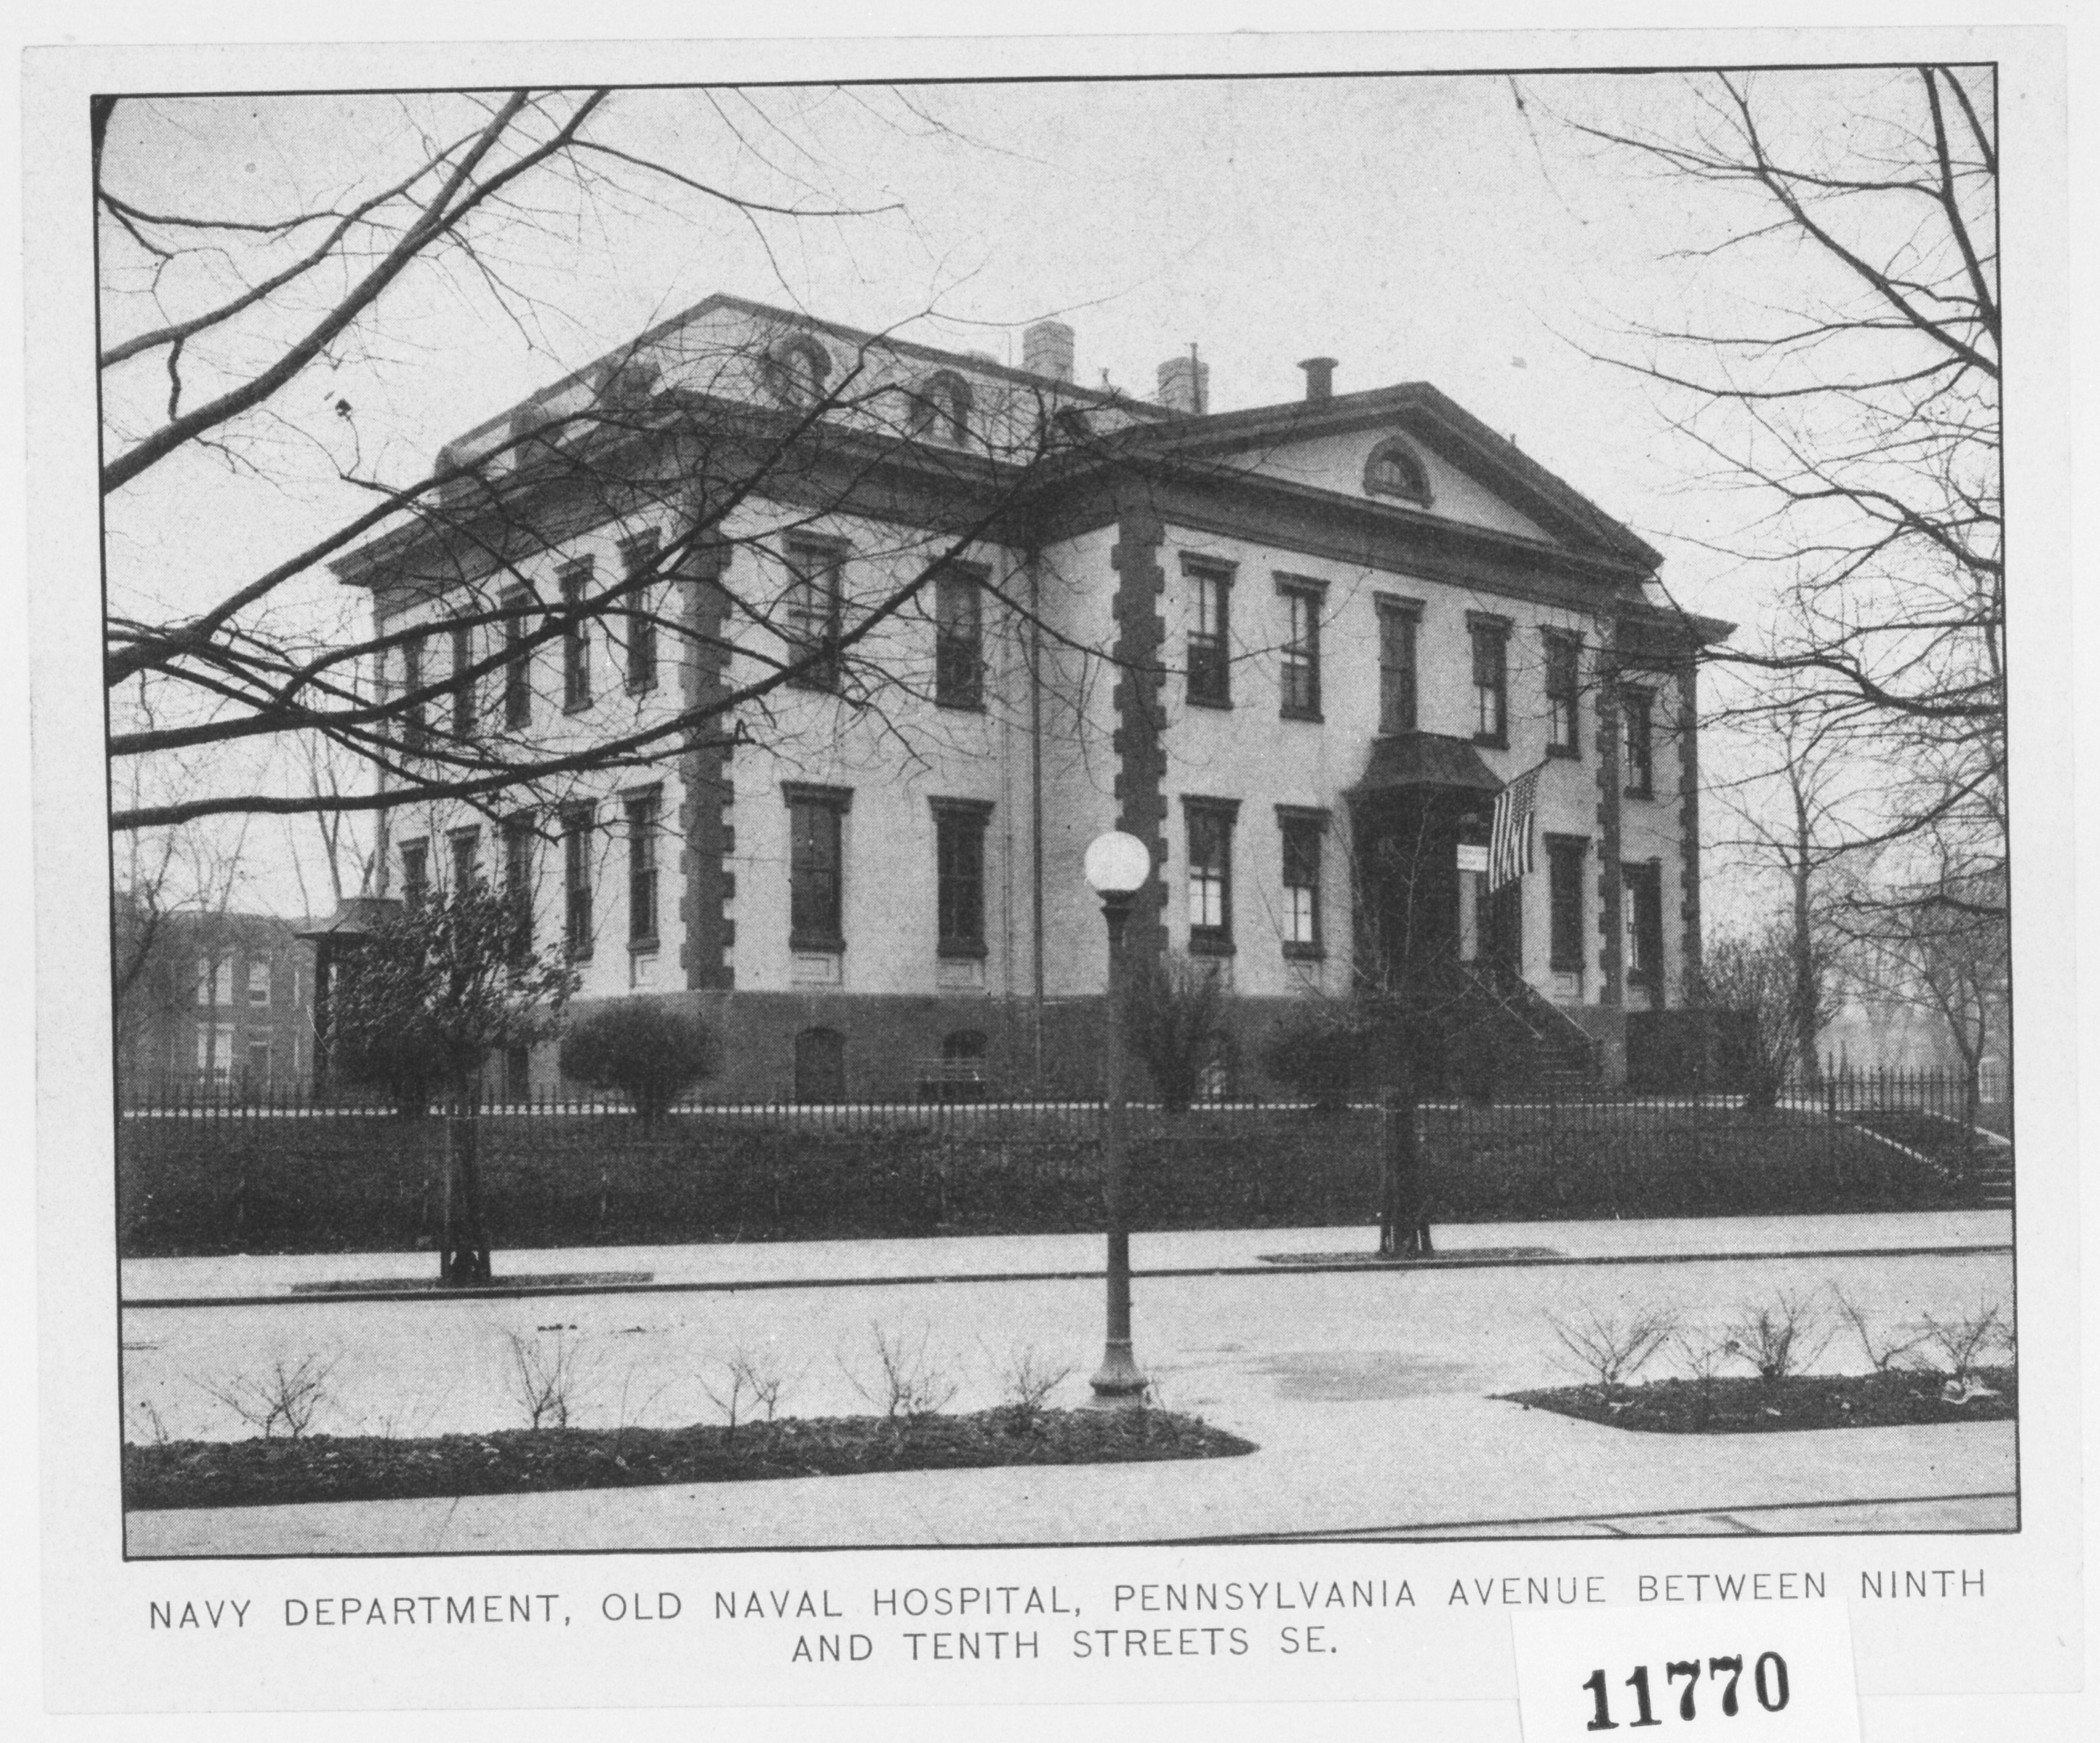 Undated photograph of the of the Old Naval Hospital from the Northeast